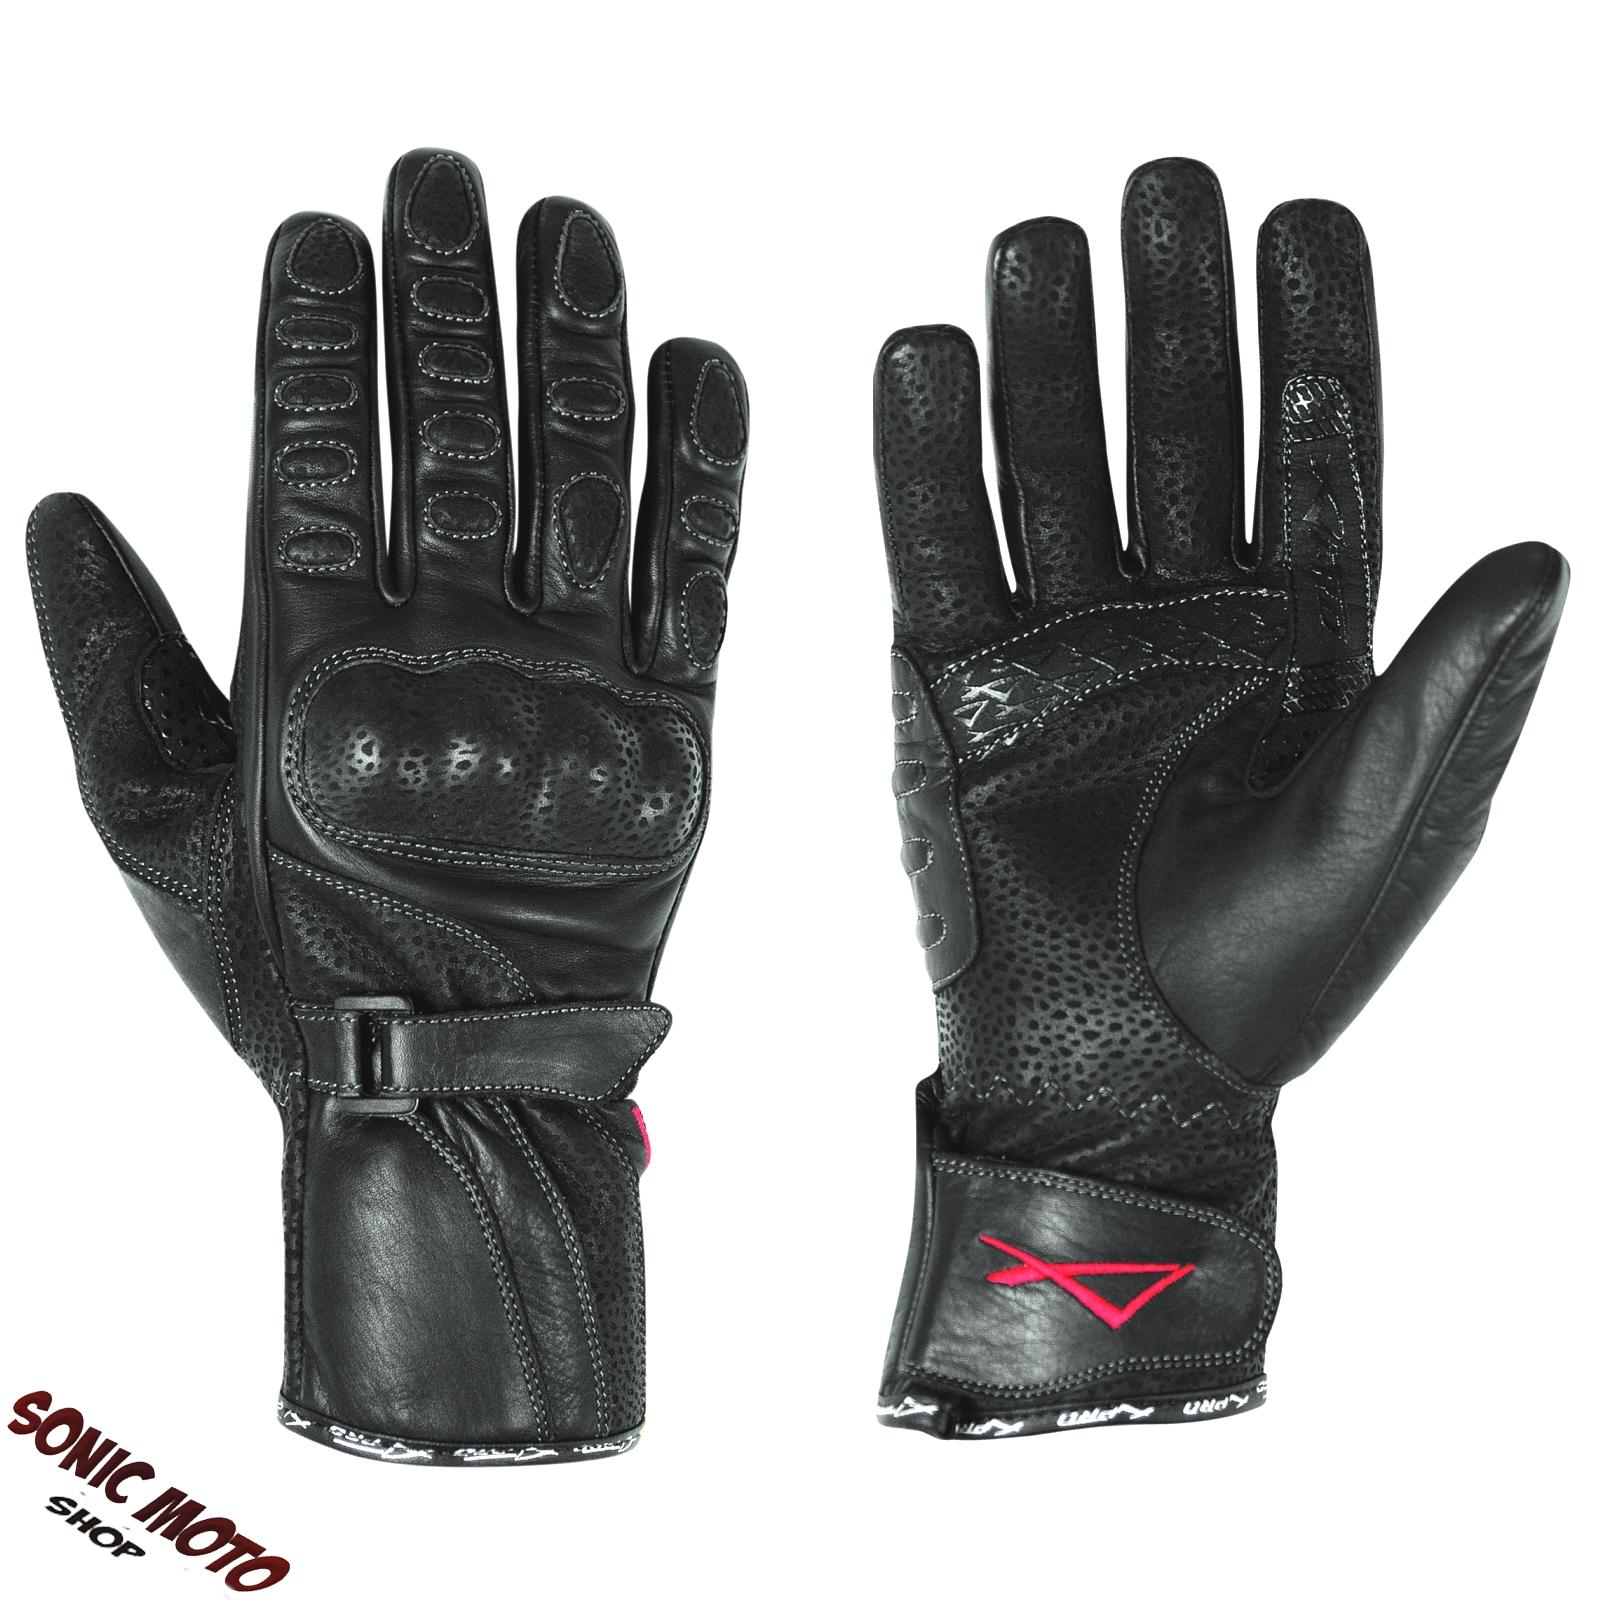 gants longs femme cuir protections coques moto motard renforc s sonic moto ebay. Black Bedroom Furniture Sets. Home Design Ideas